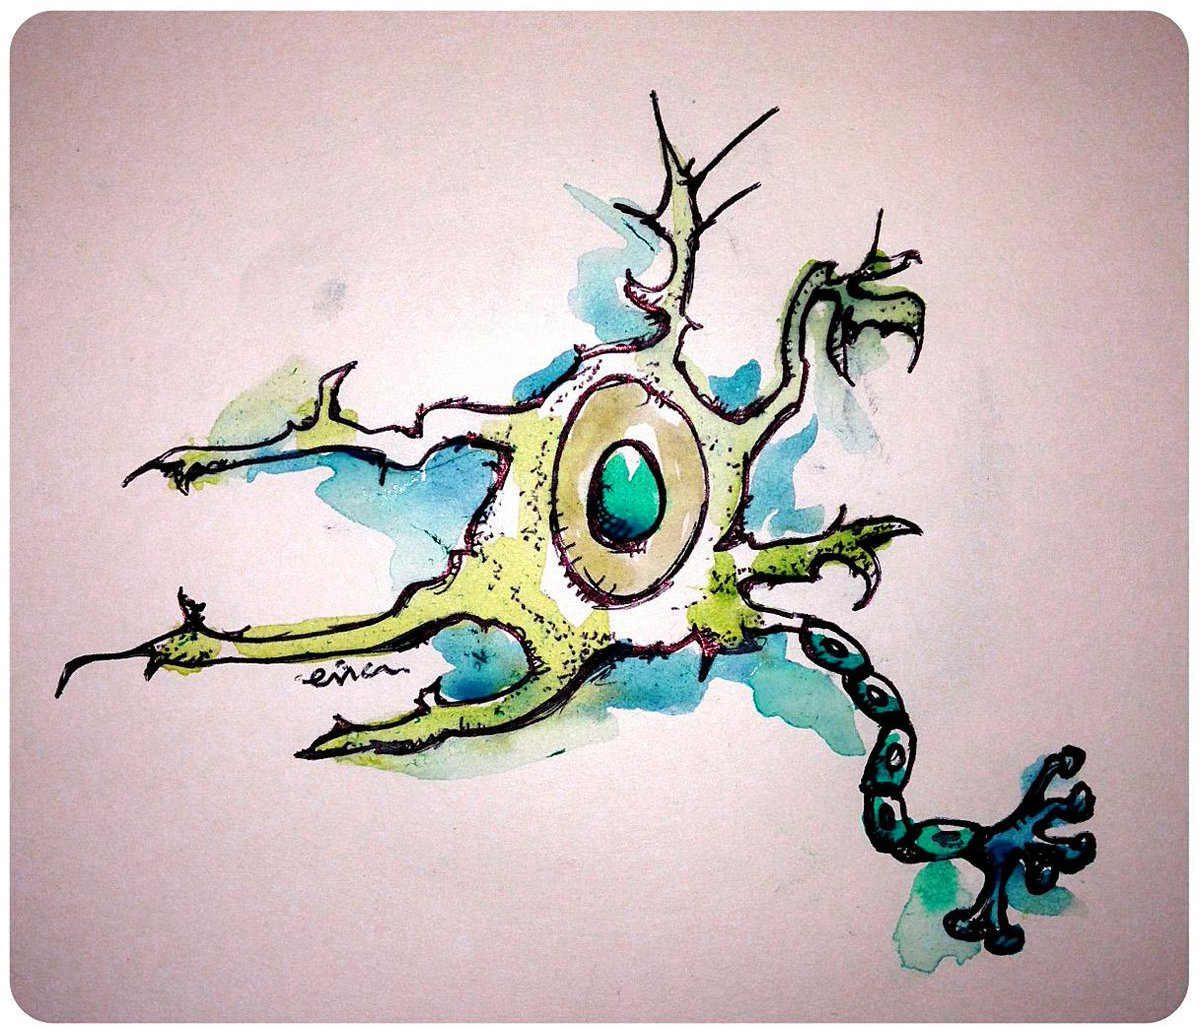 """#SciArt (science art) turns information into knowledge. """"Neuron"""" http://t.co/7bp6dopVpG http://t.co/NtPgTBOcDR"""